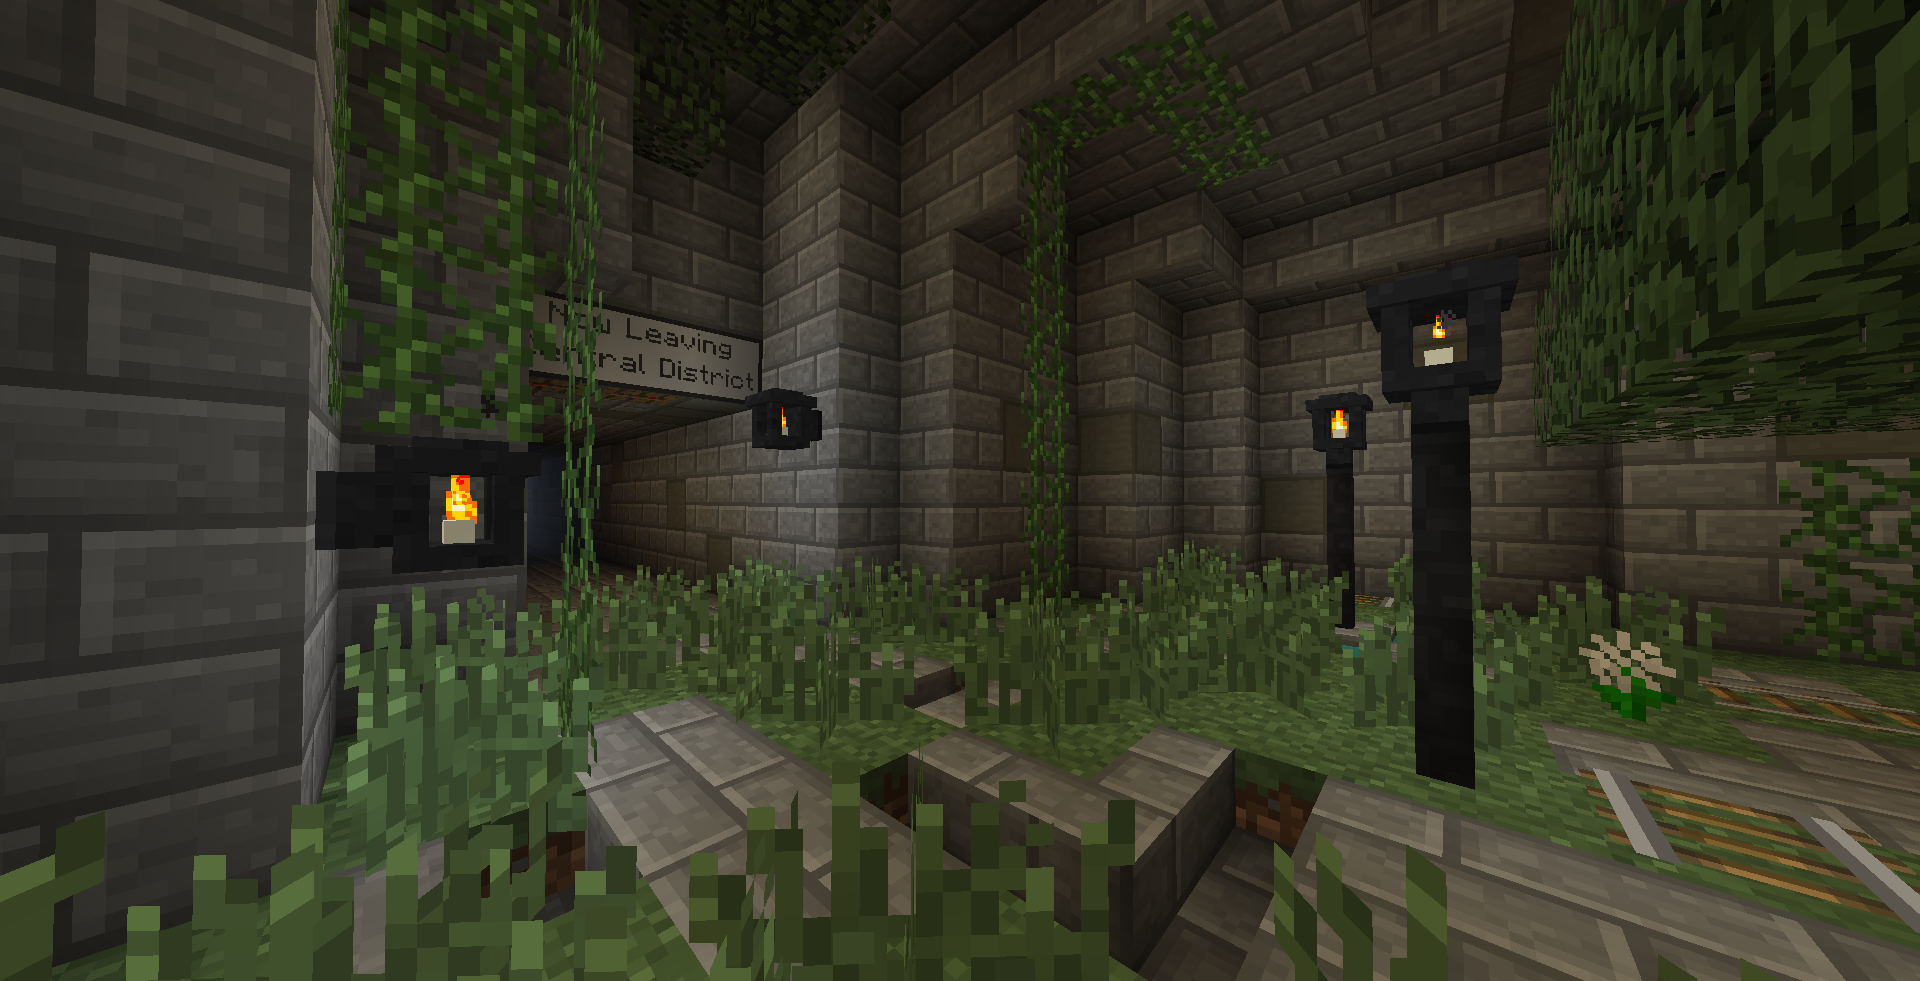 """A minecraft screenshot of an indoor brick area with street lamps overgrown with plants. There is a sign by a dark hallway which reads """"Now Leaving Central District"""""""